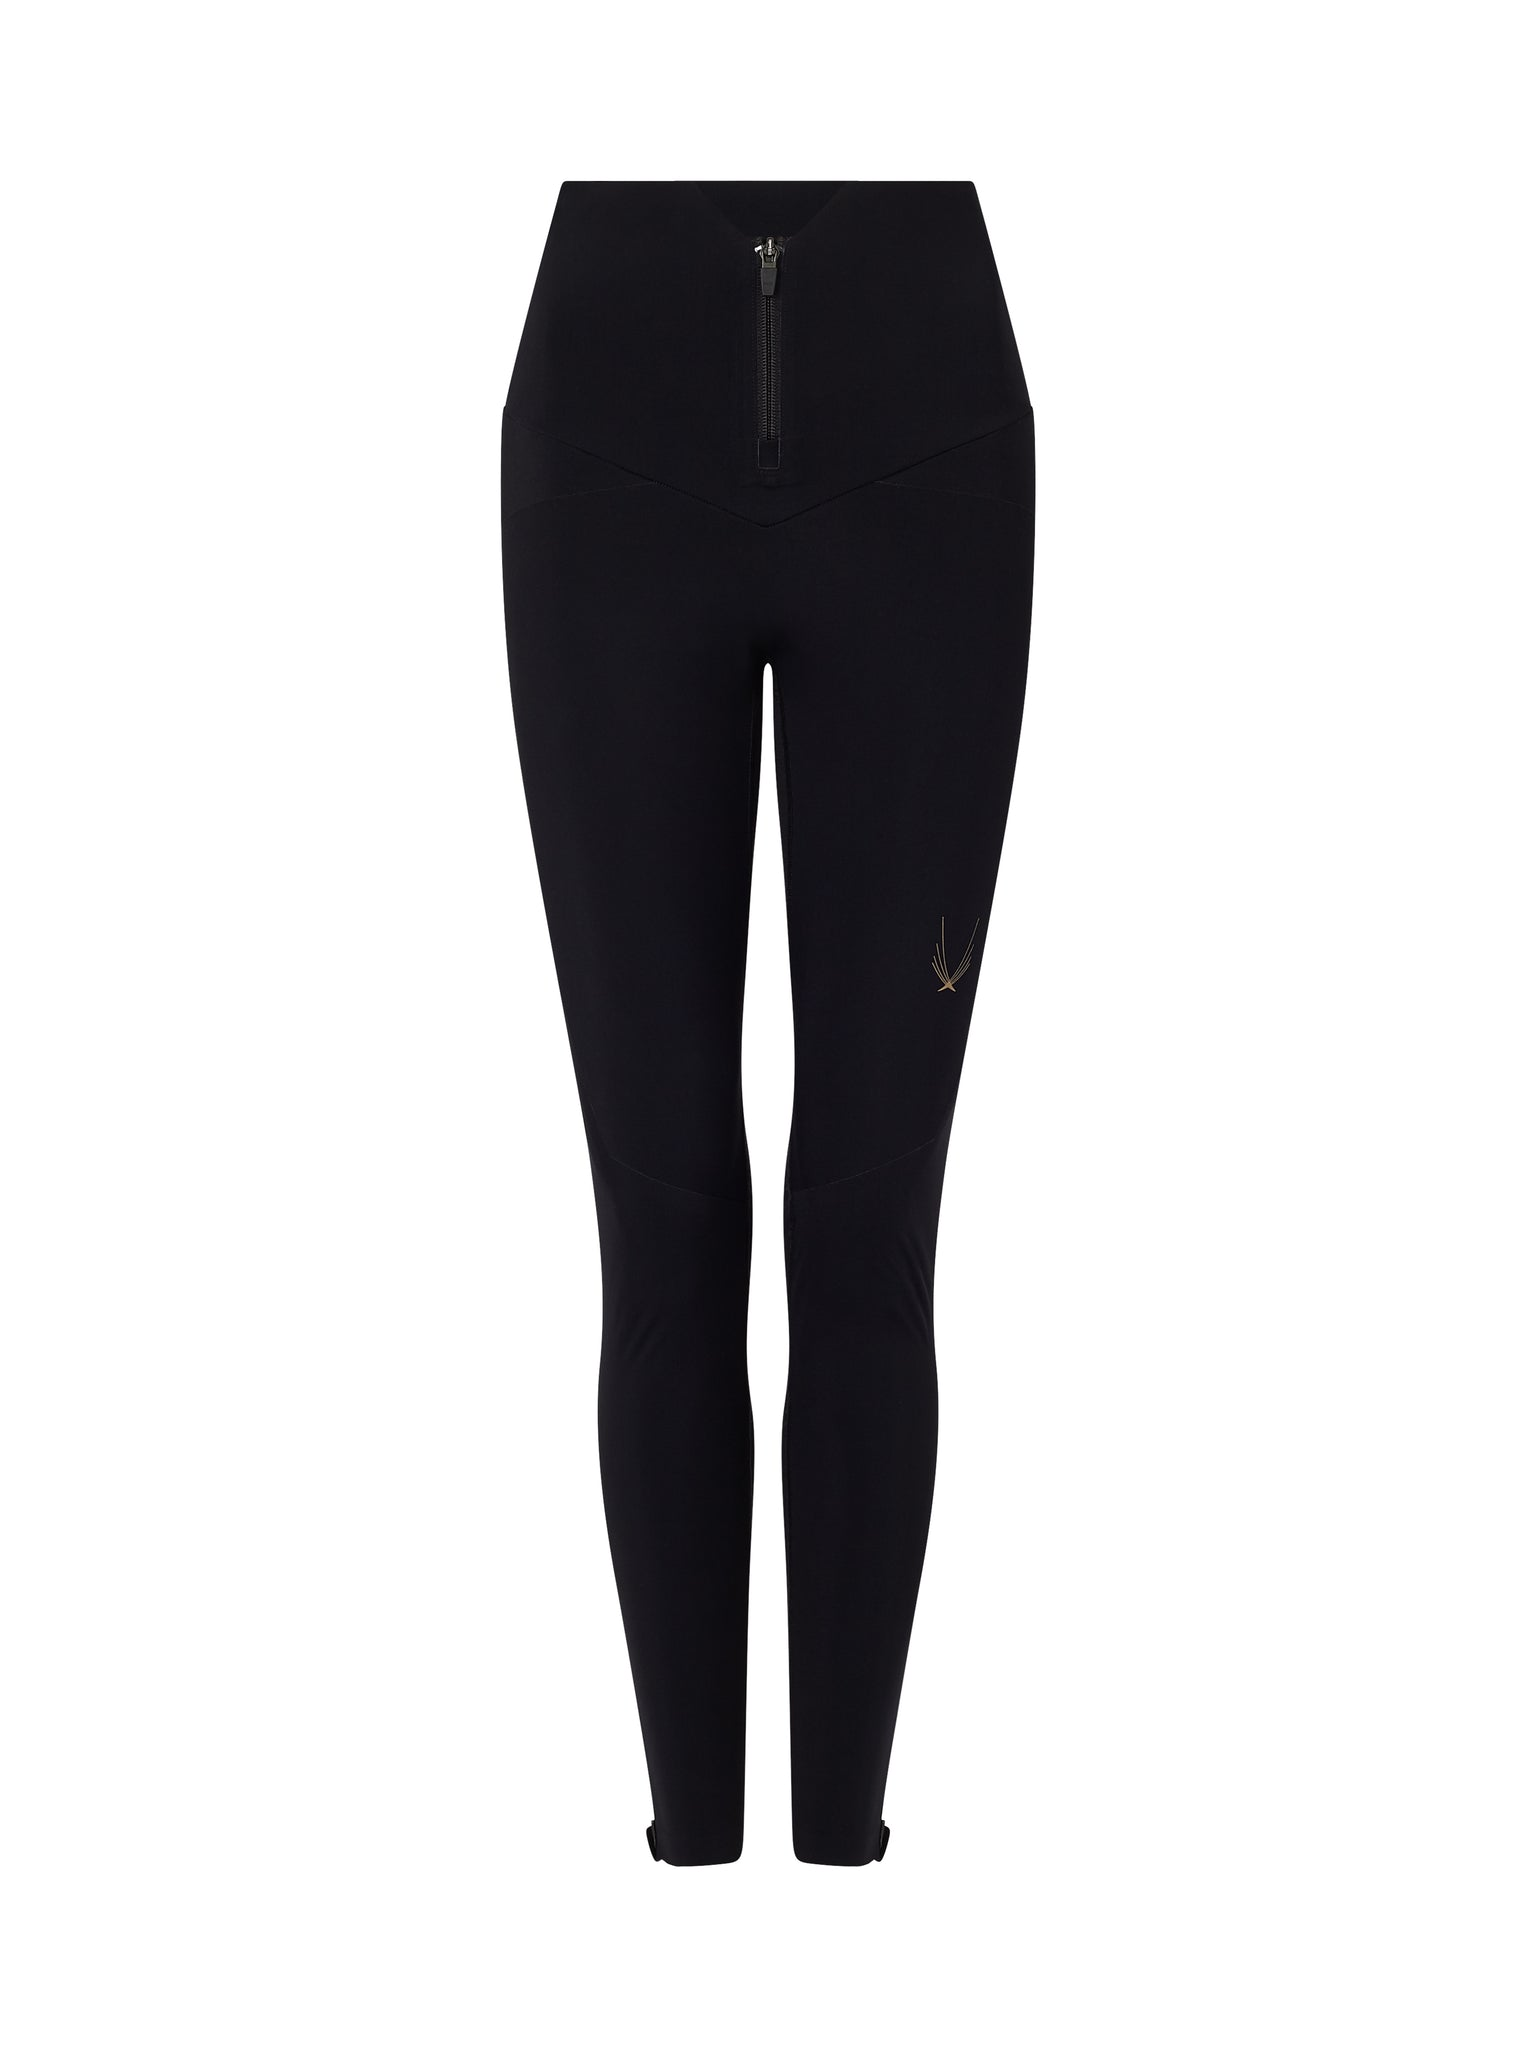 Torque Leggings